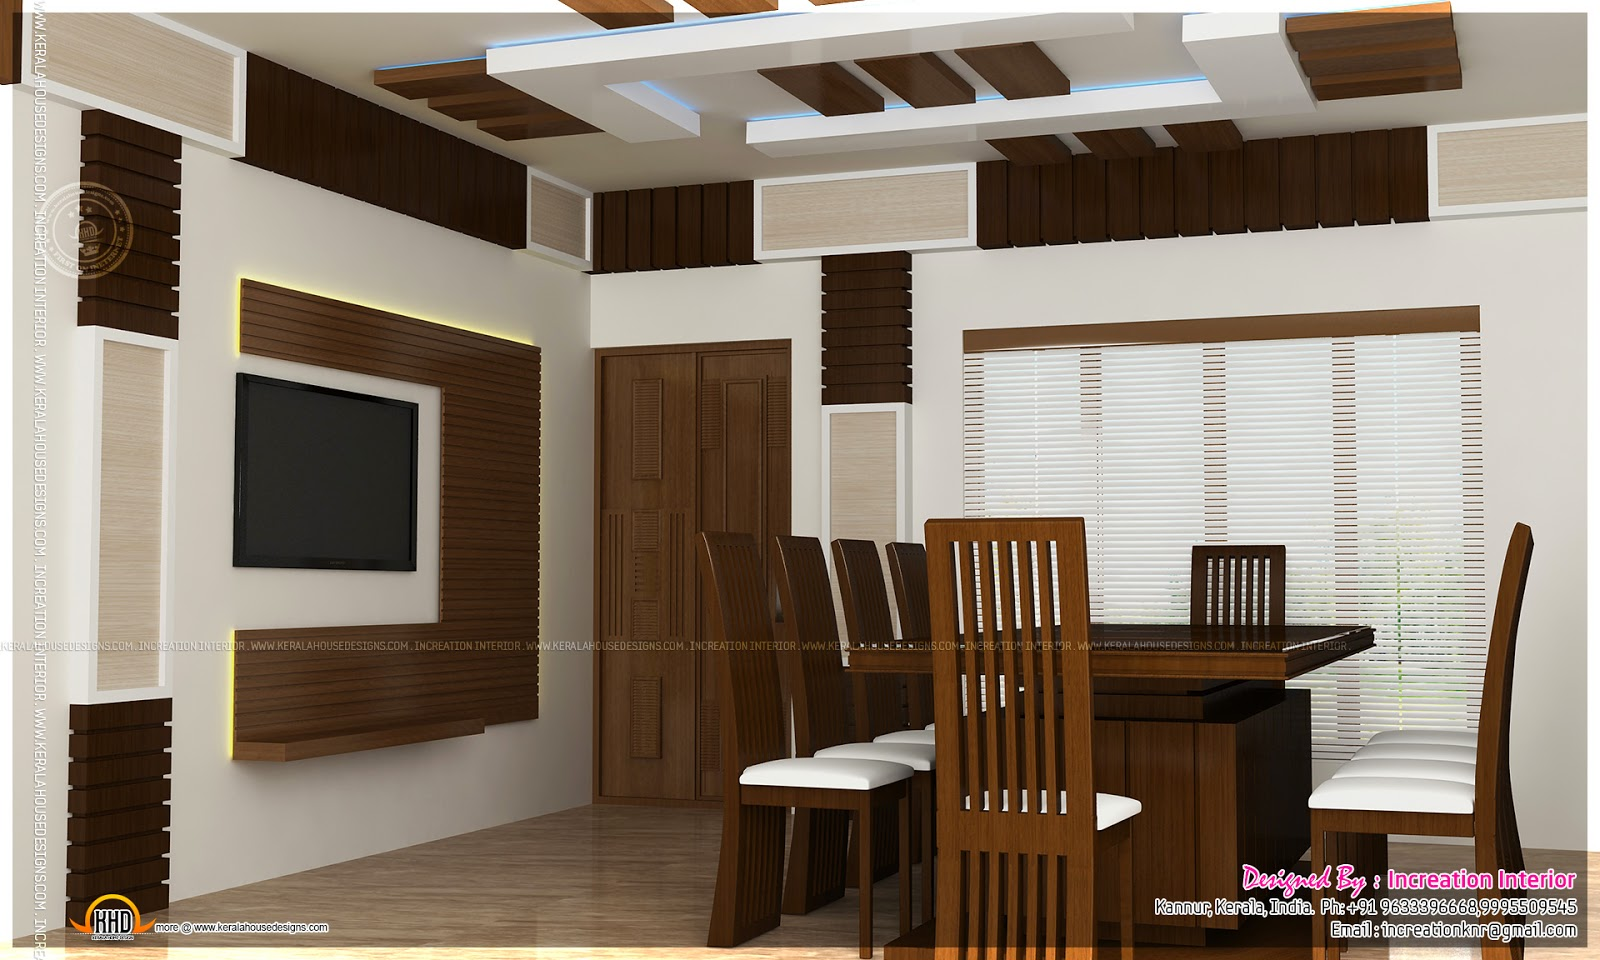 Interior design ideas by increation interior kerala for Dining room designs india